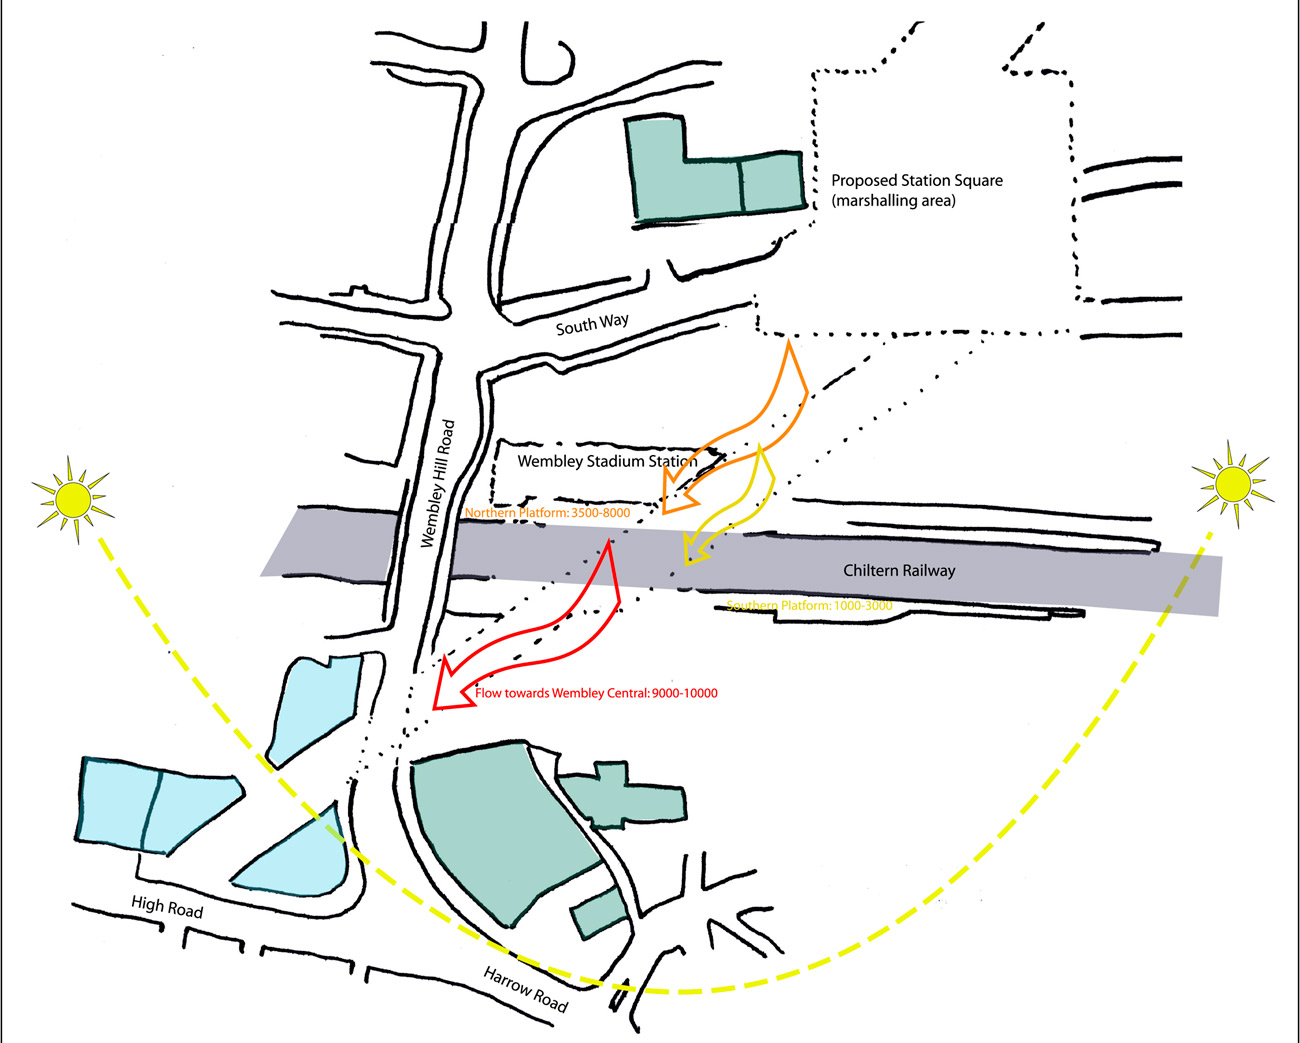 site analysis - Wembley White Horse Bridge & Public Realm by Marks Barfield Architects